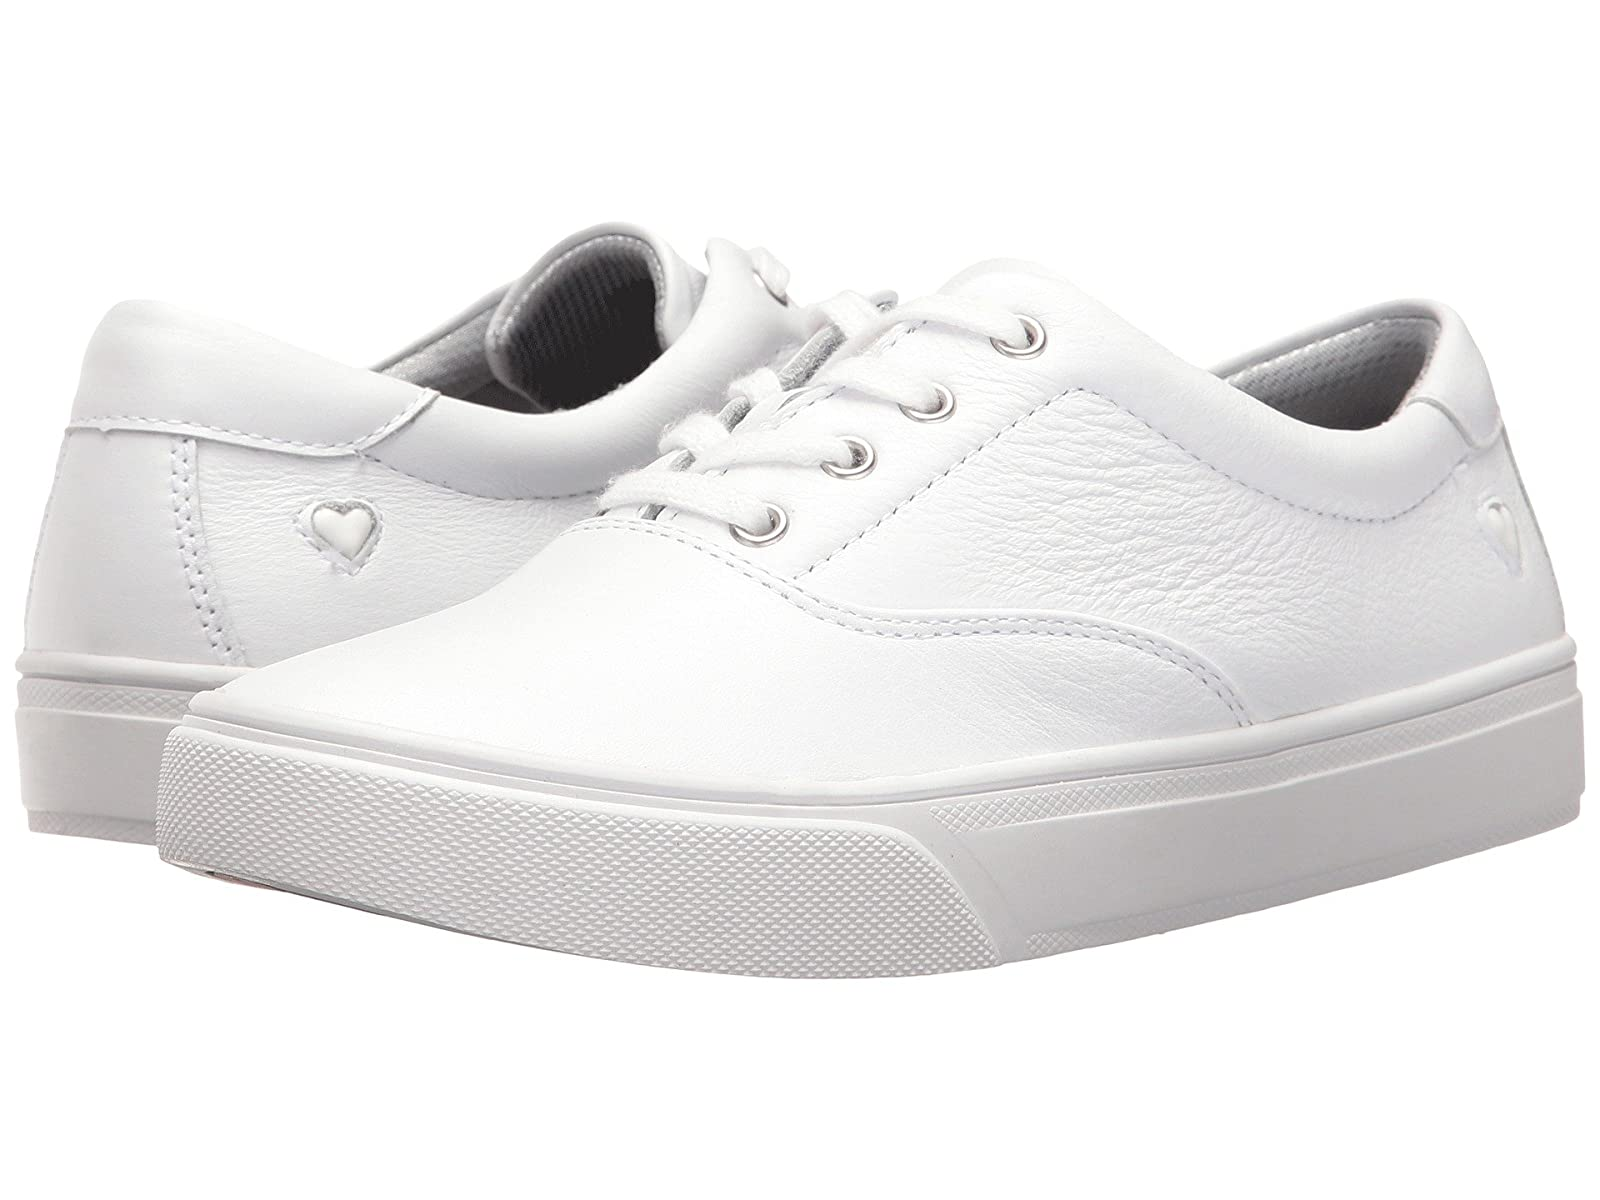 Nurse Mates FleetAtmospheric grades have affordable shoes